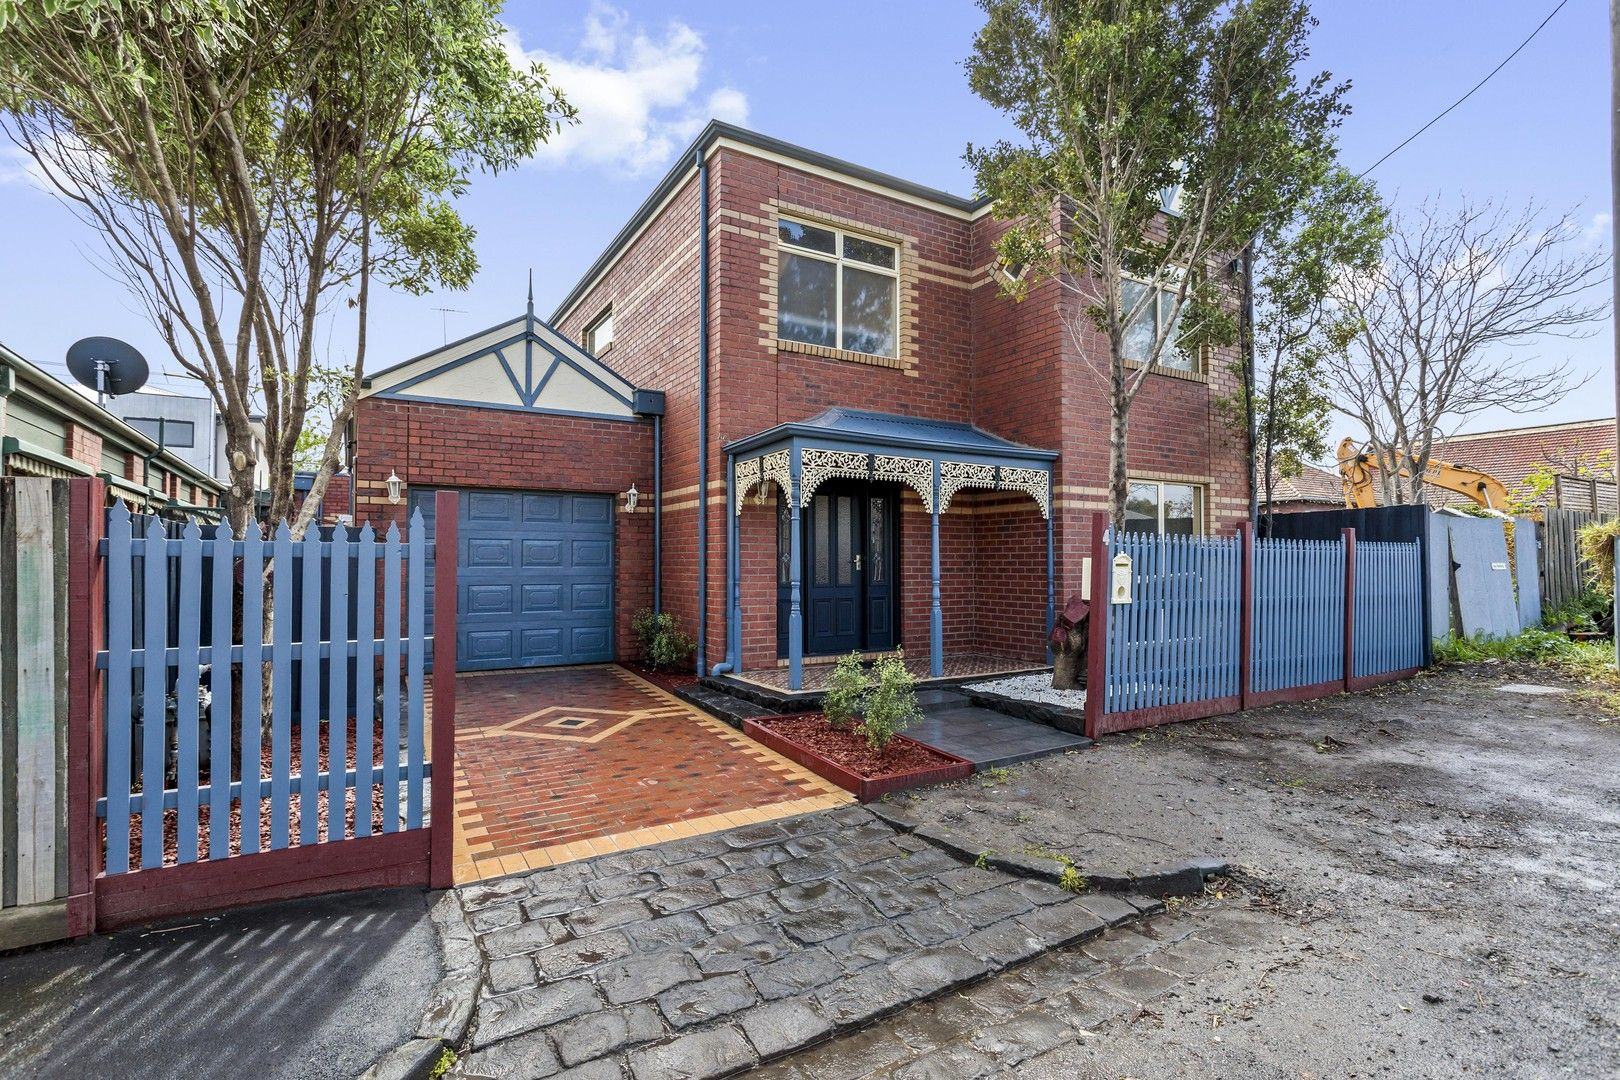 4 bedrooms House in 4 Avoca Street YARRAVILLE VIC, 3013